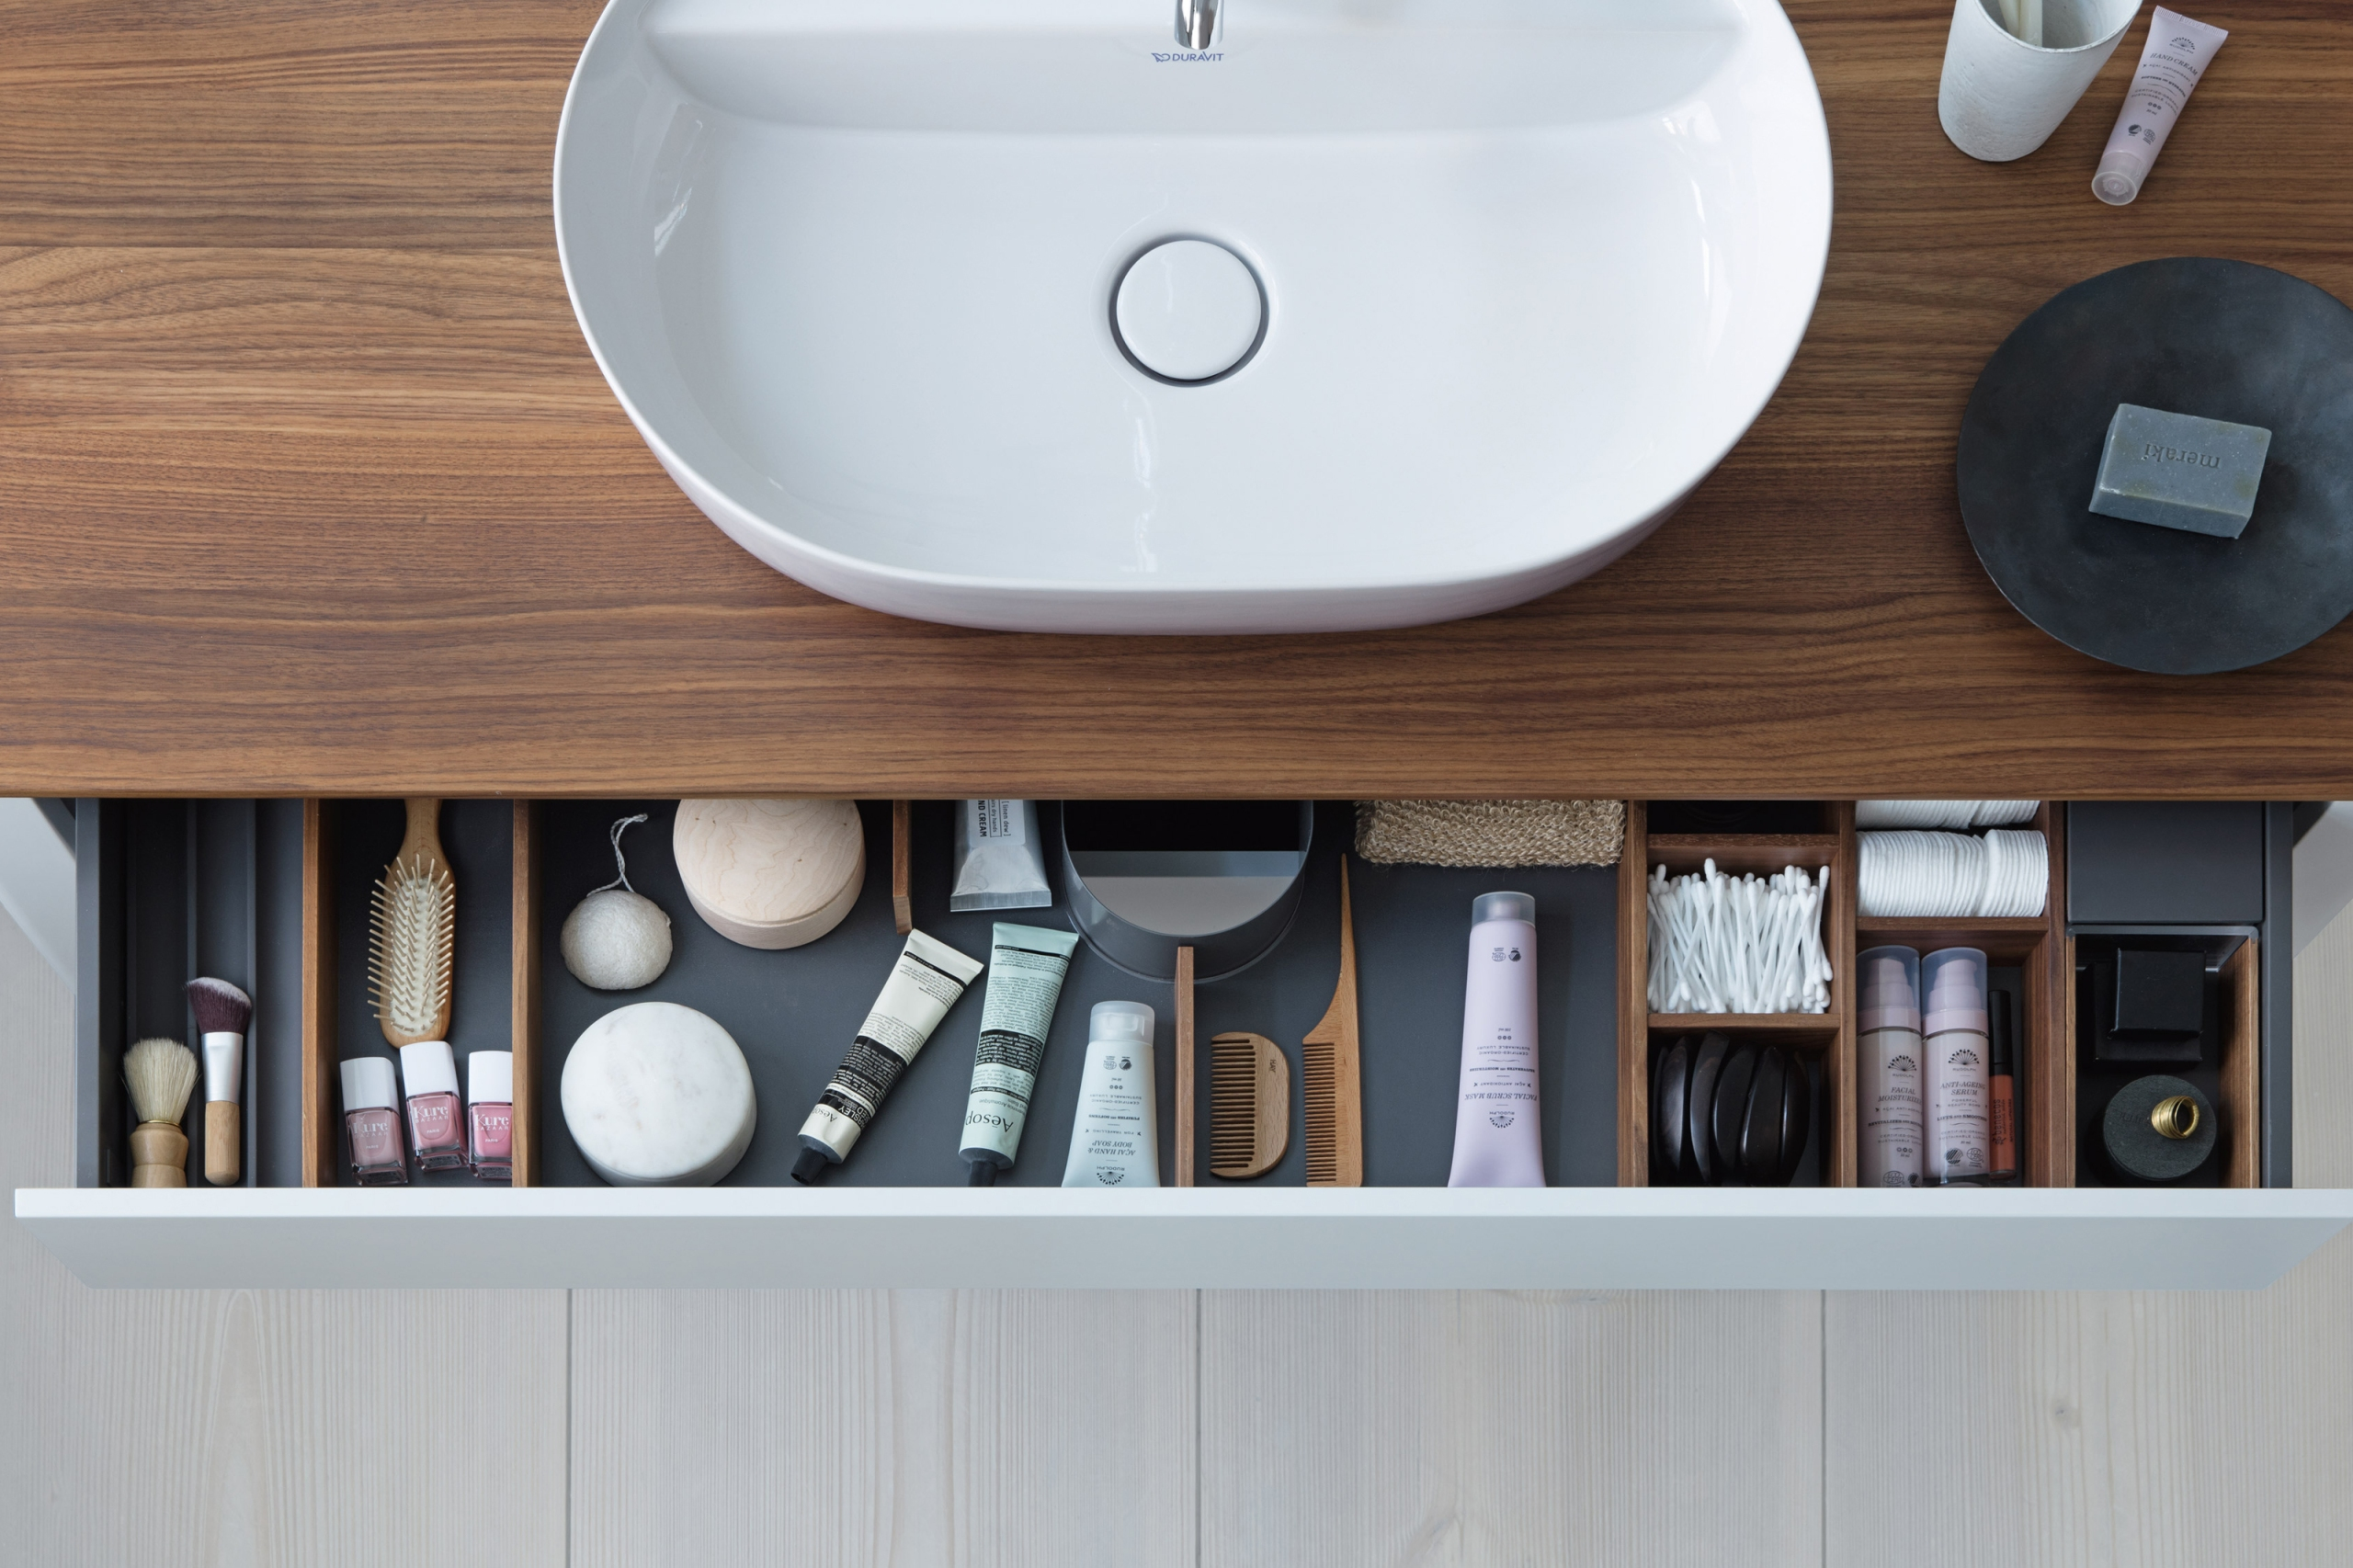 An overhead view of a bathroom sink and open drawer